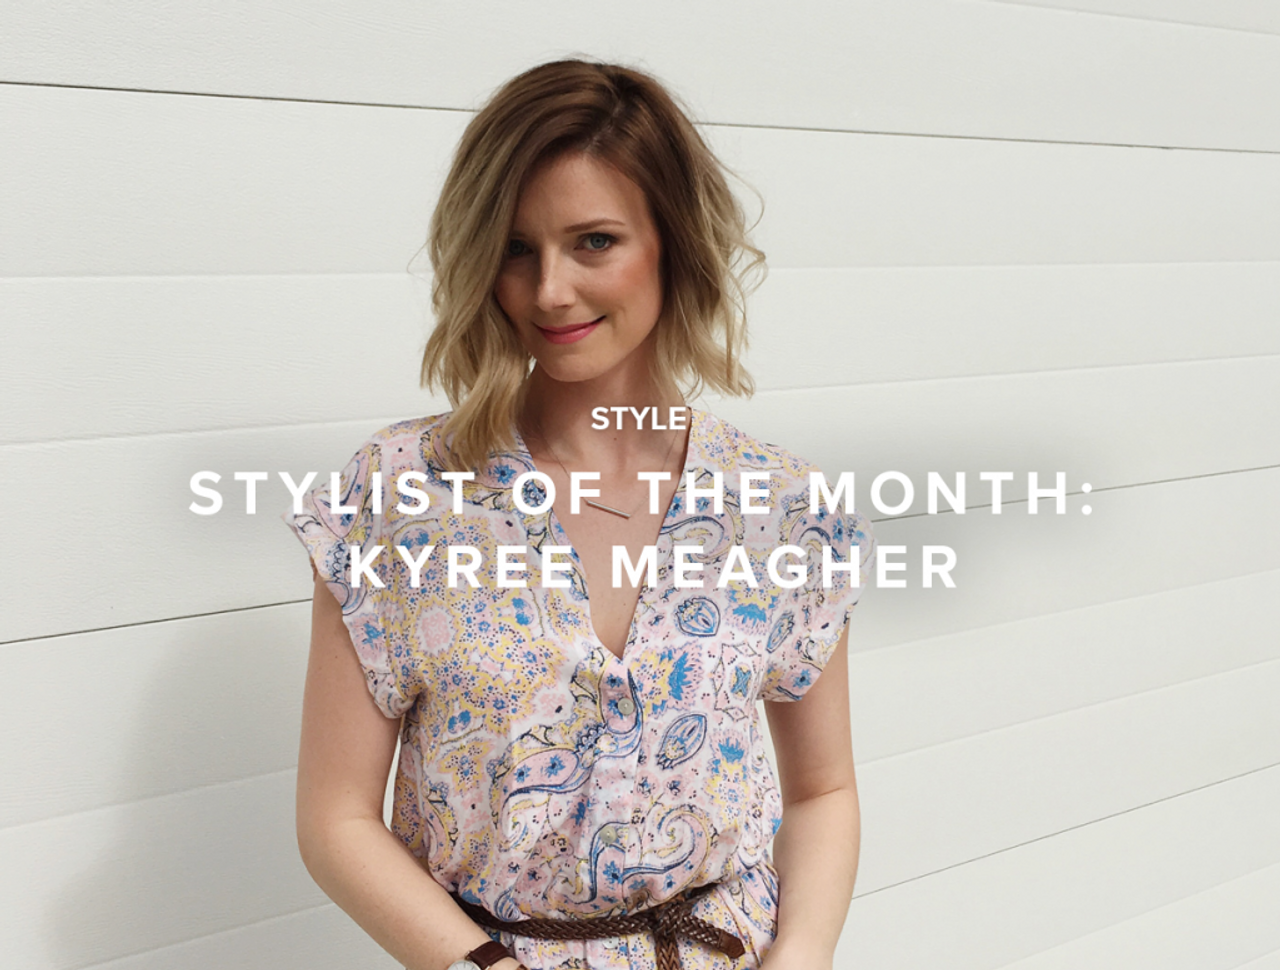 Stylist of the Month – Kyree Meagher